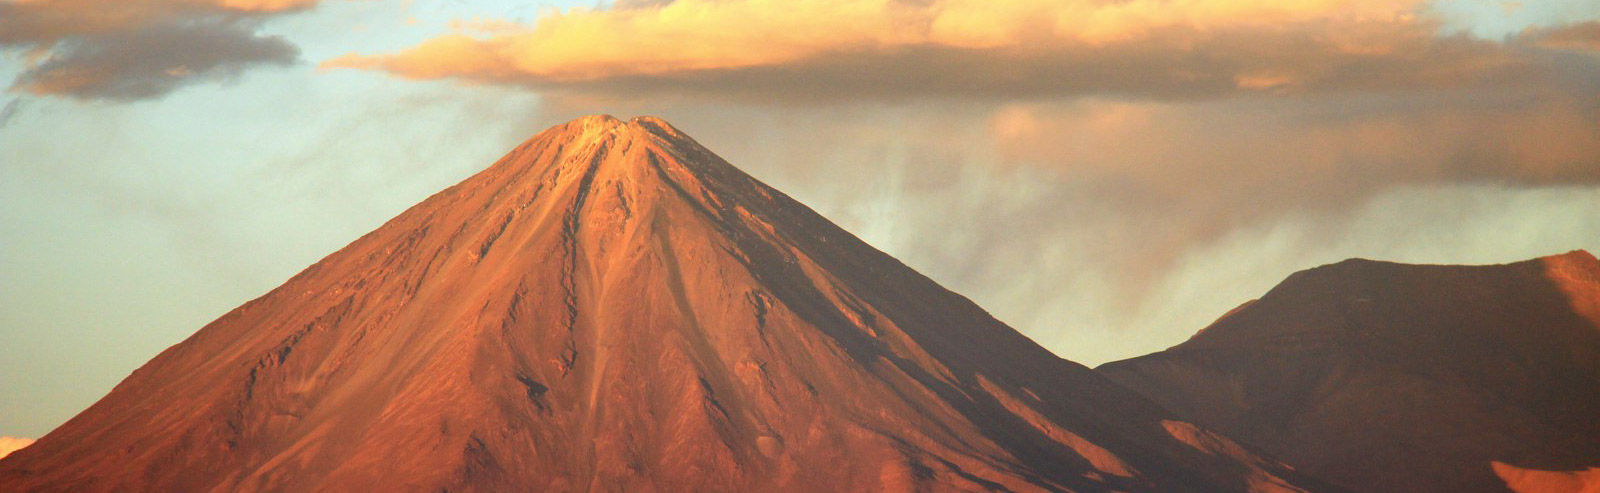 Volcán Licancabur towers over the Atacama Desert. Photo credit Krheesy, Flickr.